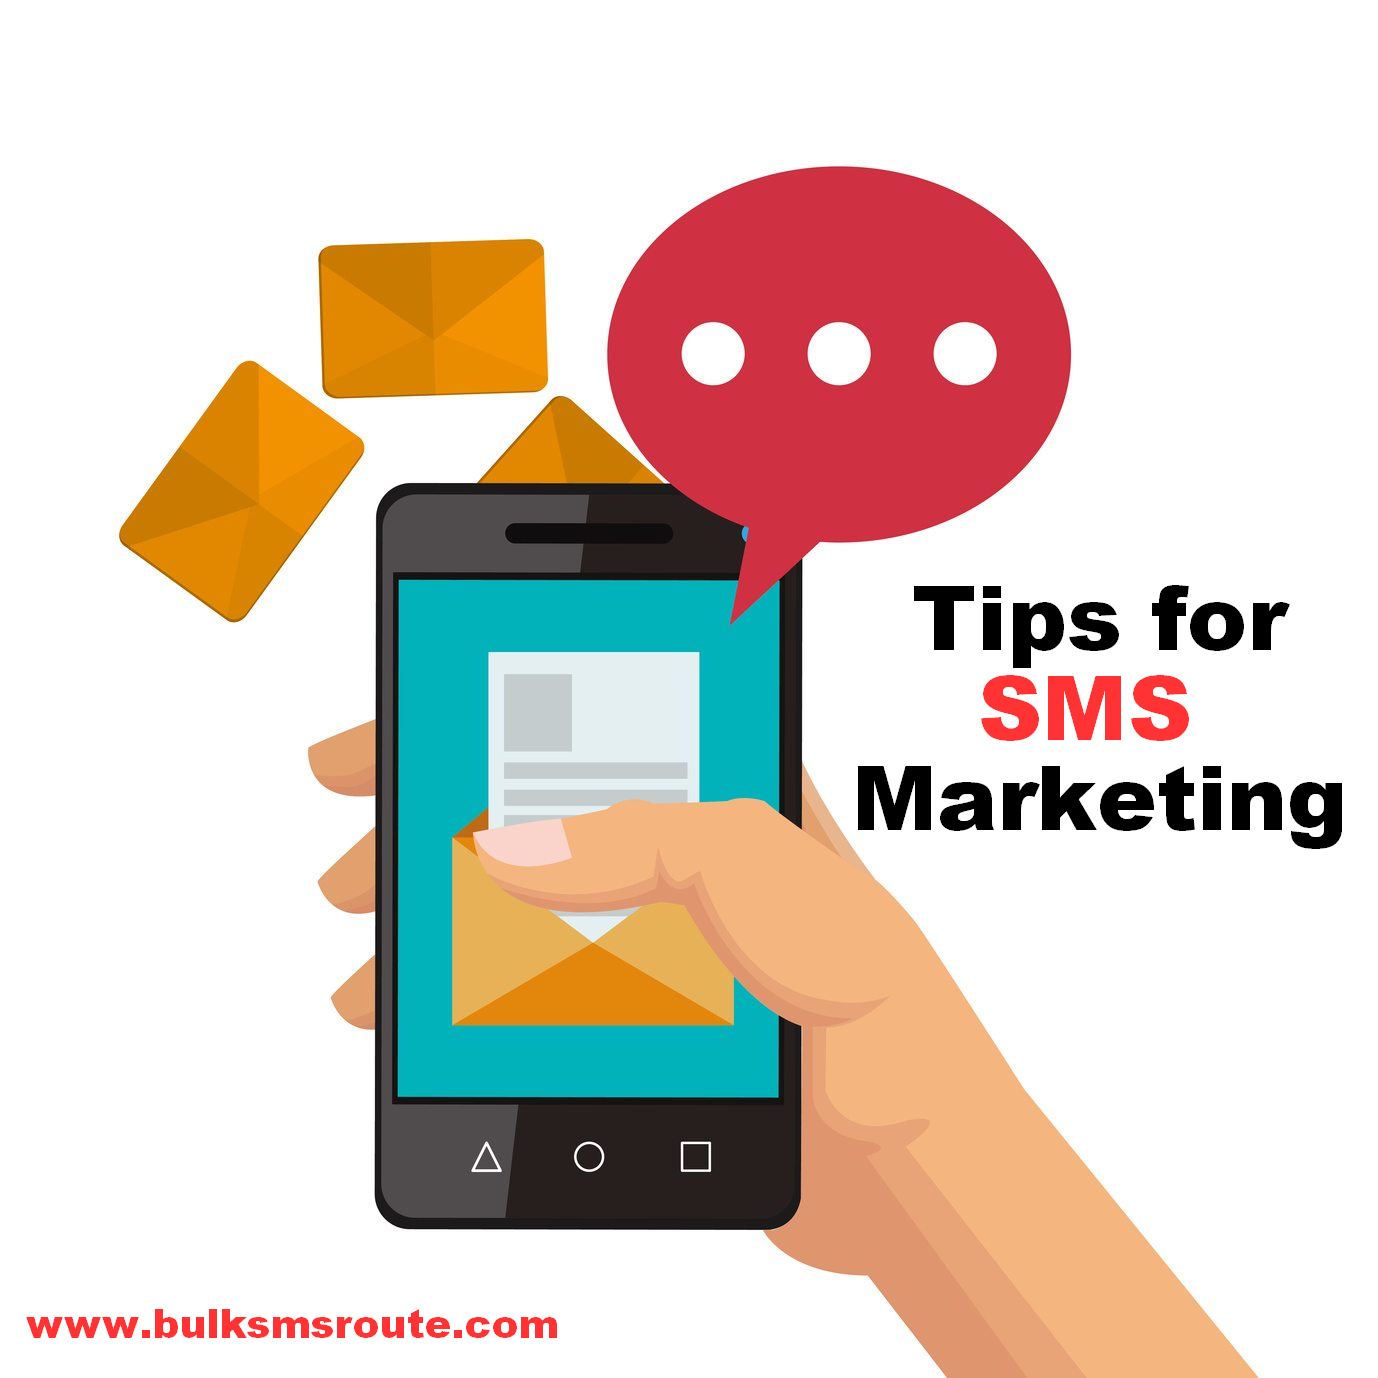 bulk-sms-marketing-tips bulksmsroute.com